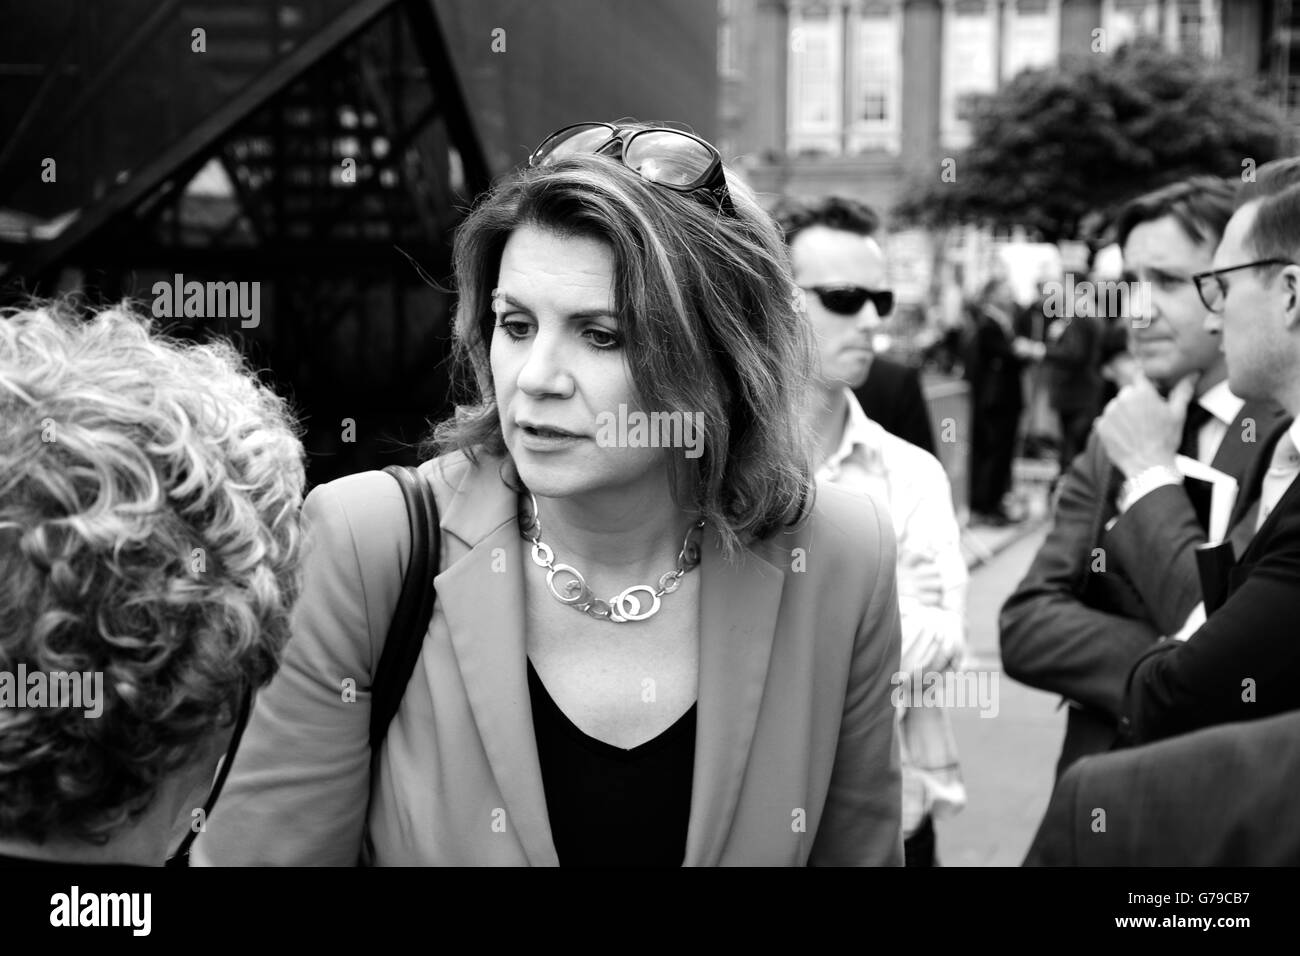 Julia Hartley Brewer on College Green the day after the EU Referendum result June 2016. - Stock Image